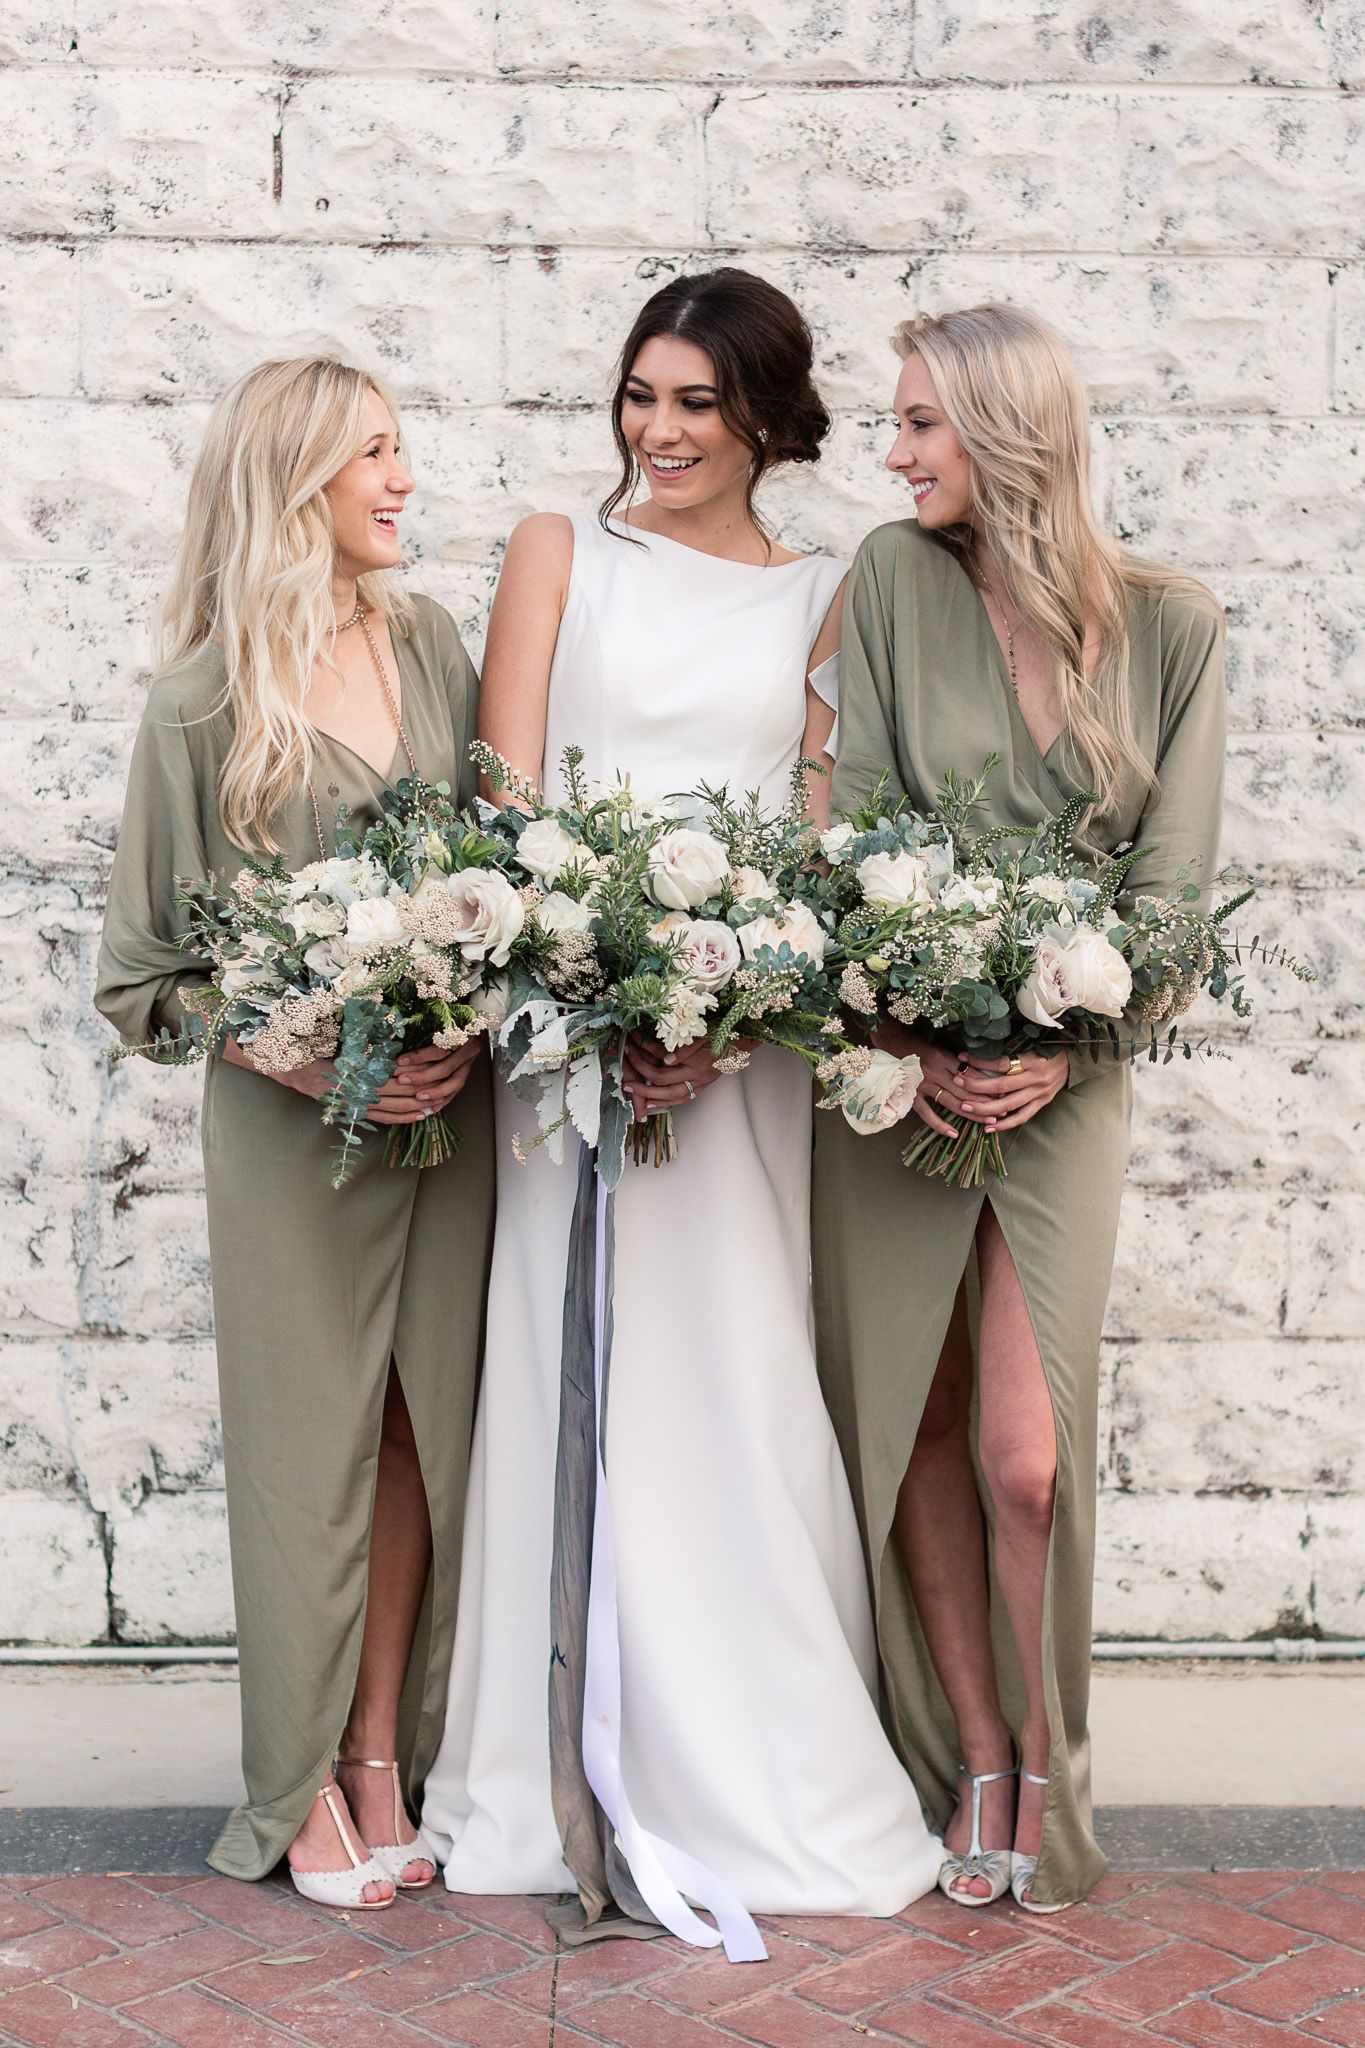 17b32325cff Boho Olive Green Casual Bridesmaid Dresses for Wedding Party sold by  dressydances. Shop more products from dressydances on Storenvy